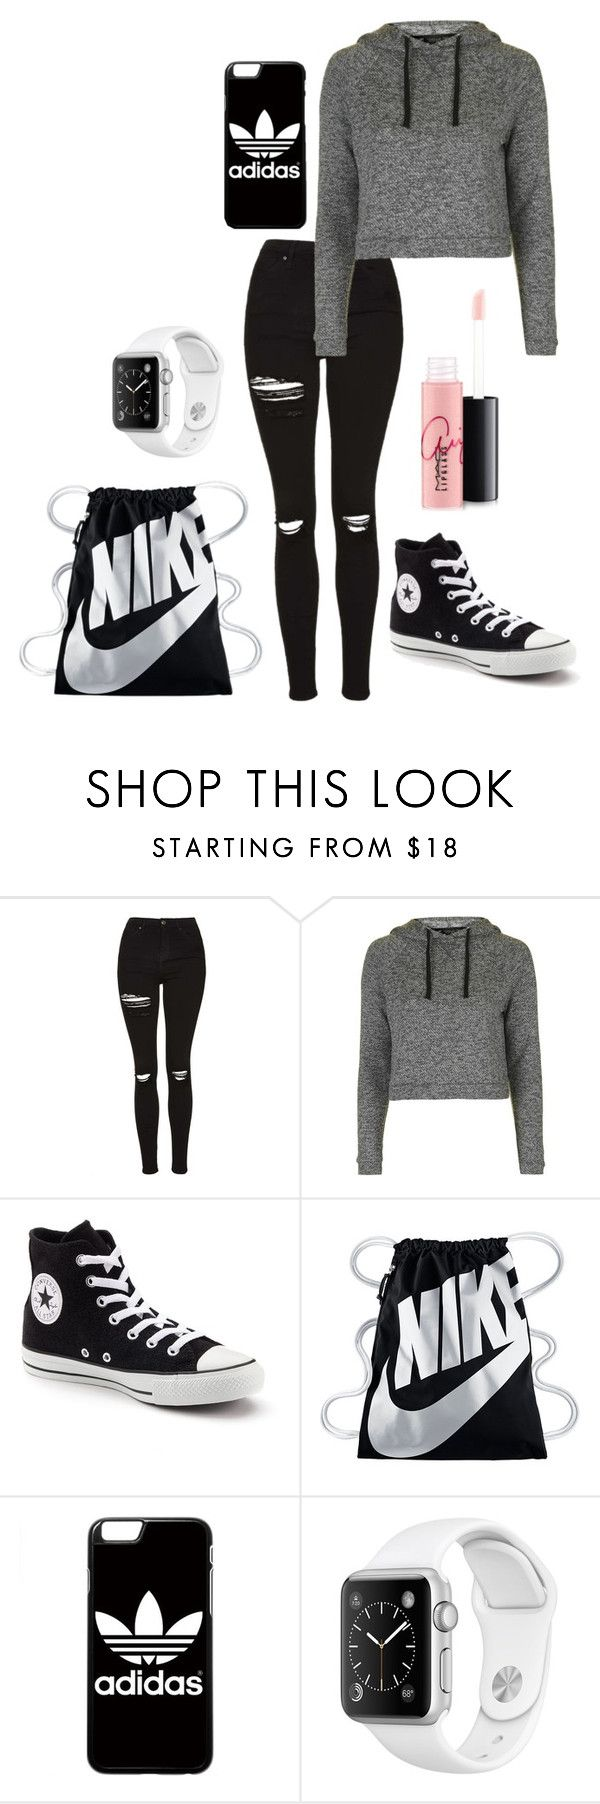 Nike shoes on converse topshop and macs